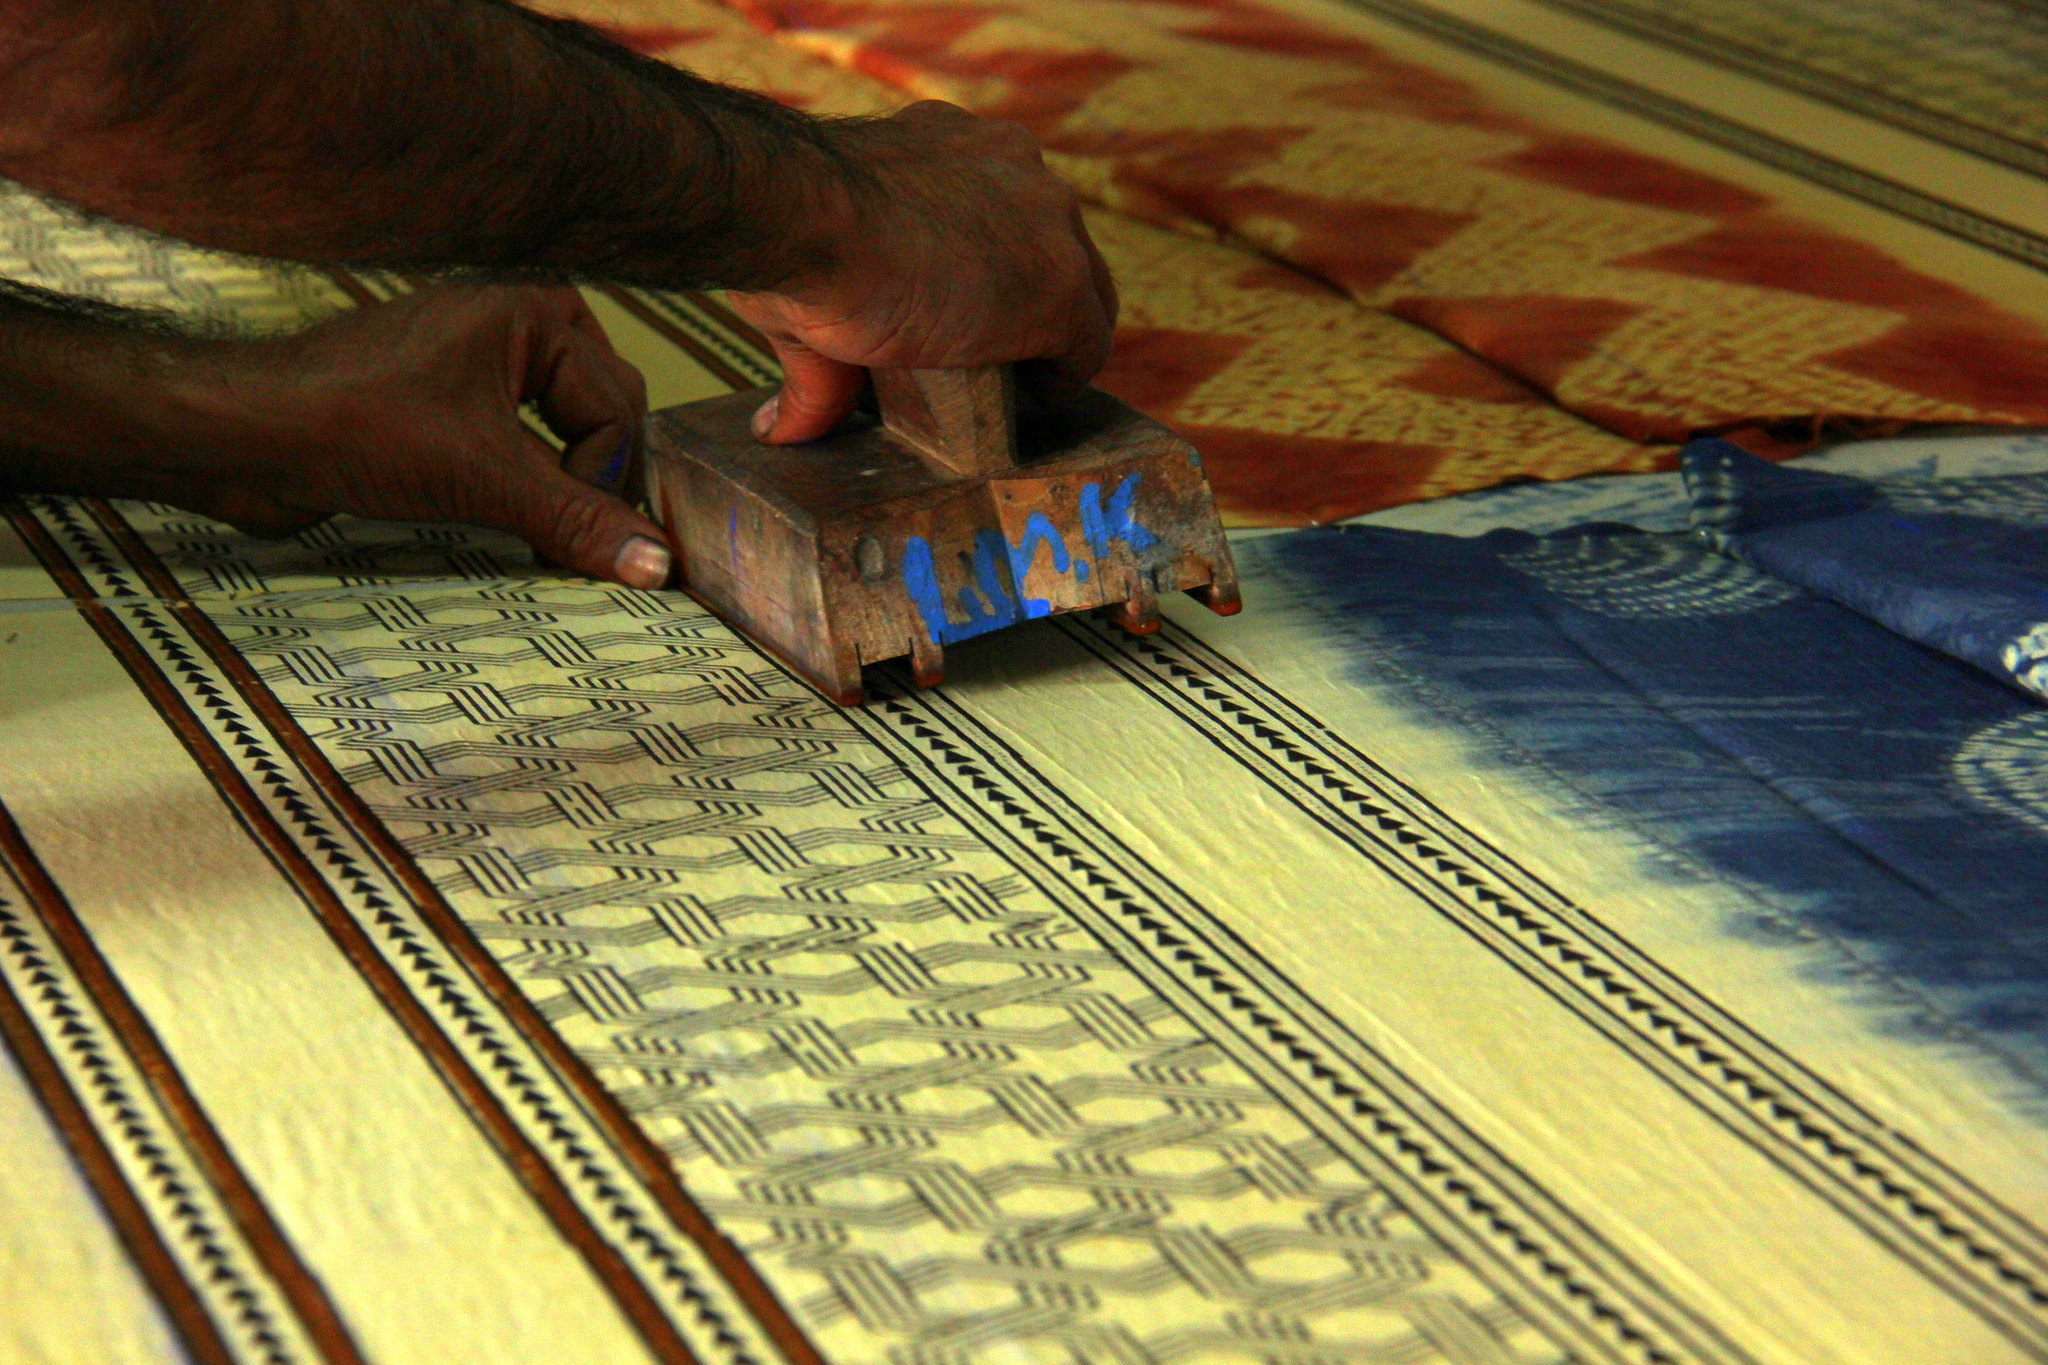 Block printing workshop in Kutch, Gujarat